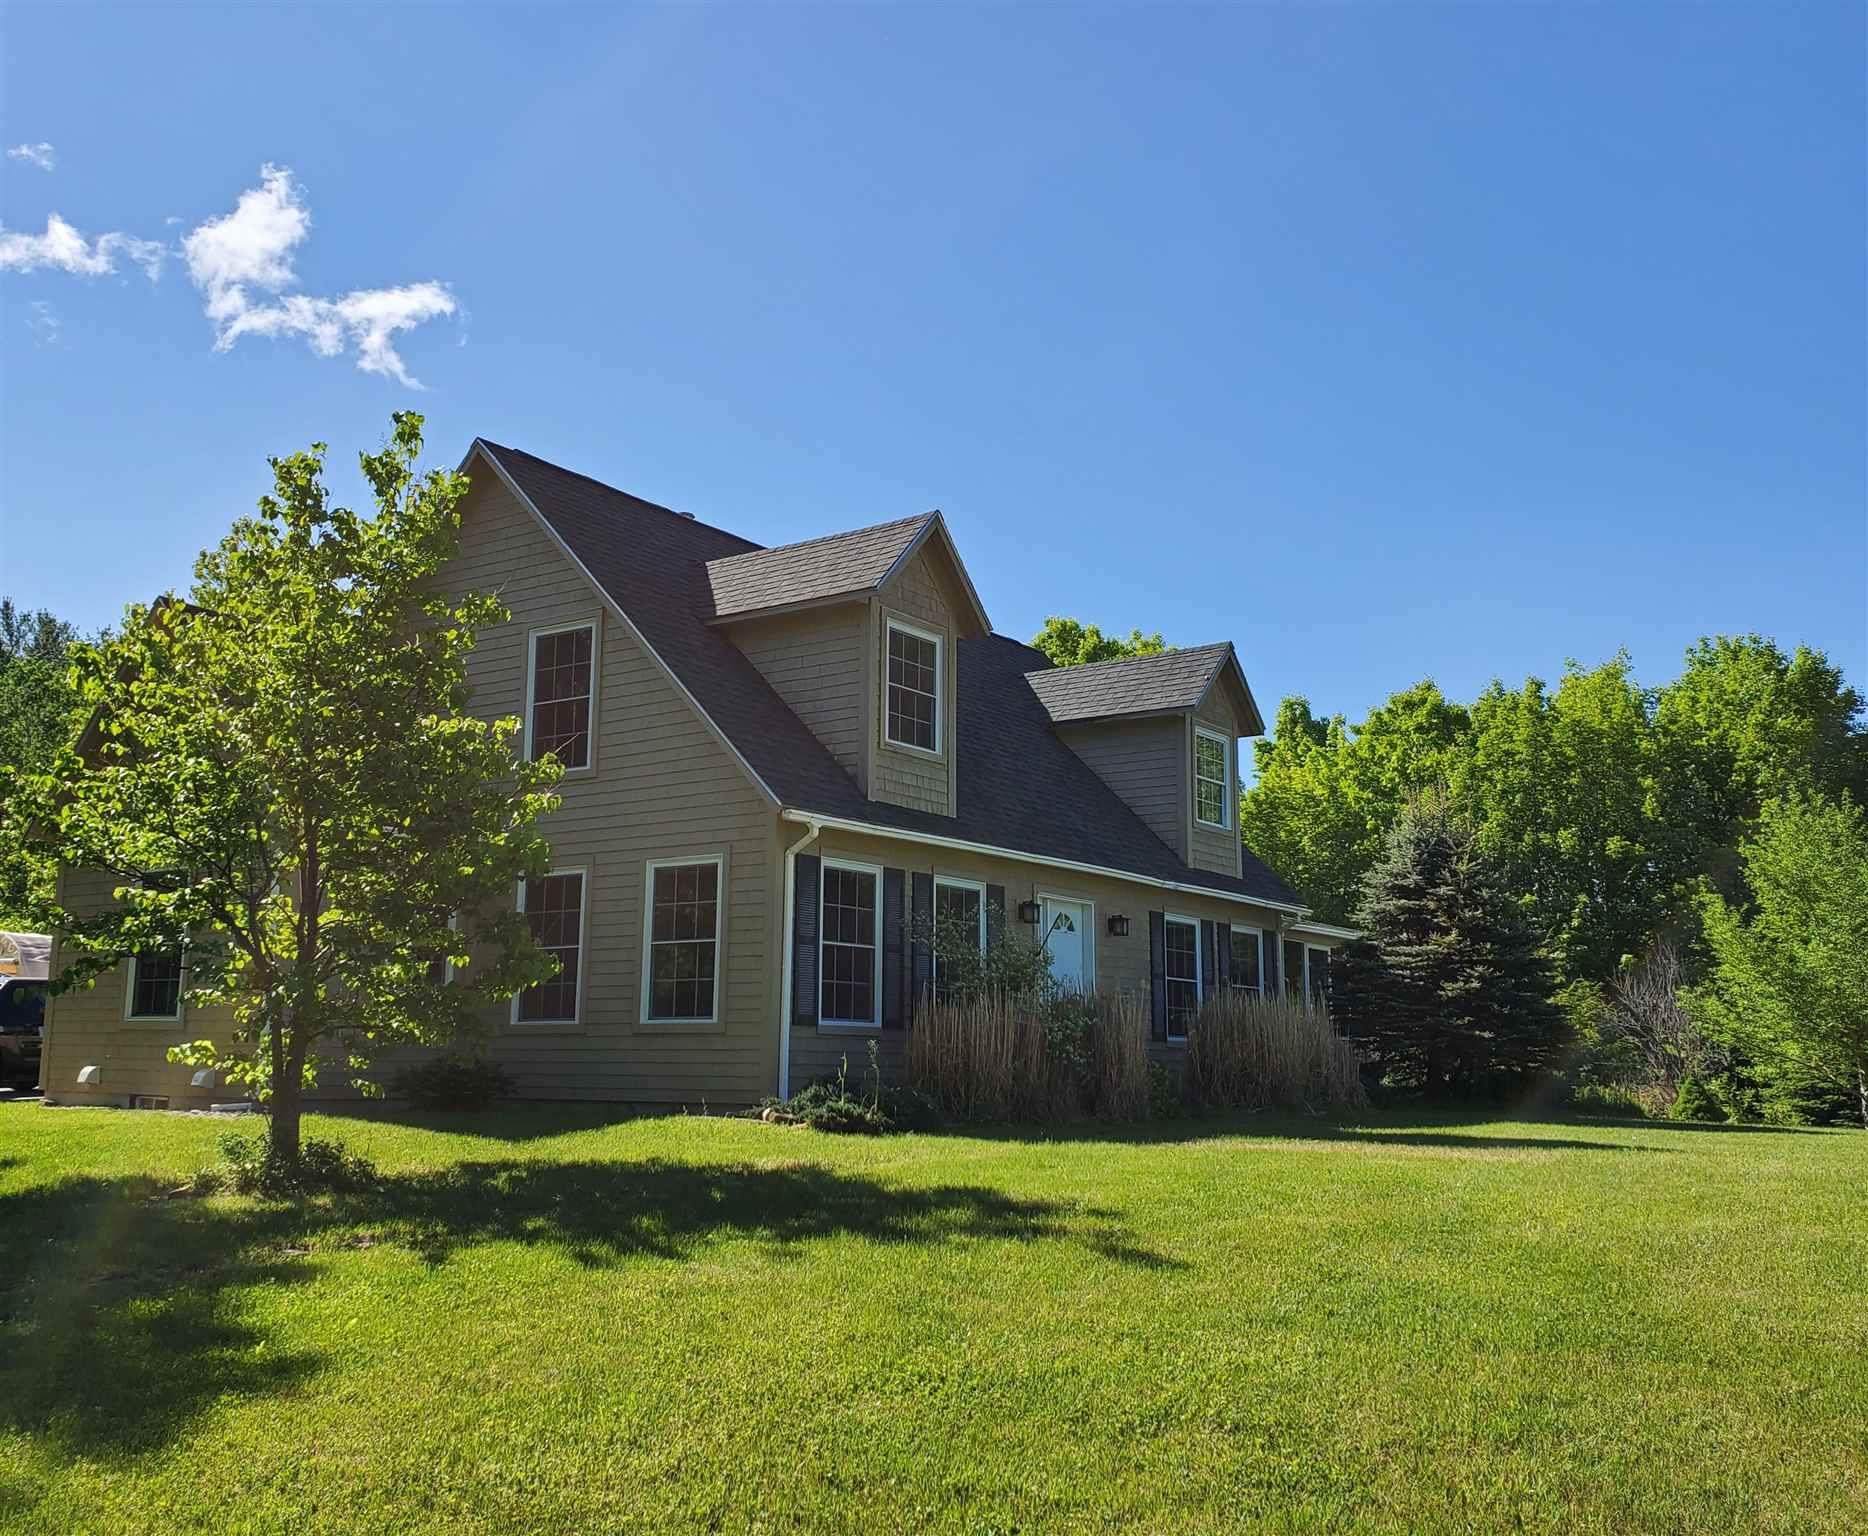 MLS 4793760: 170 Jordan Road, Keene NH